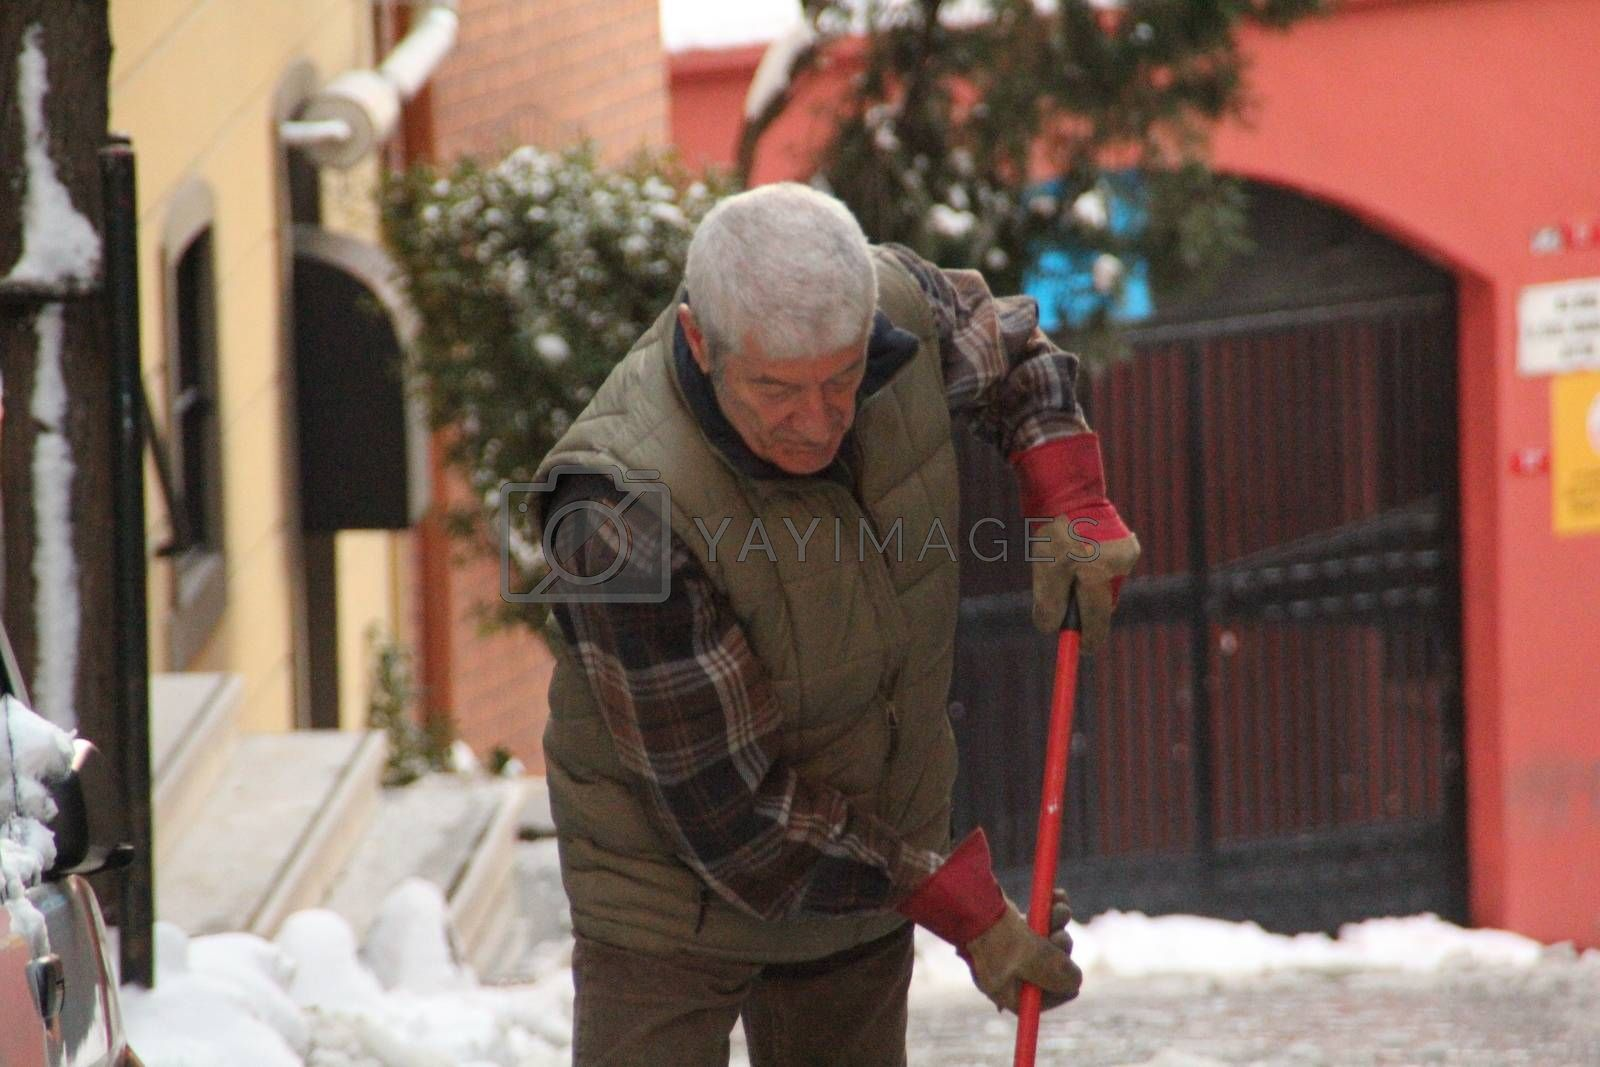 TURKEY, Istanbul: A man shovels as snow blankets Istanbul, Turkey for a third day on January 1, 2016, grounding 529 flights and nearly 30,000 passengers by January 4. Thousands are transferred to hotels, while others are forced to sleep at Sabia Gorken and Ataturk airports. The total cost of the storm has not yet been released.